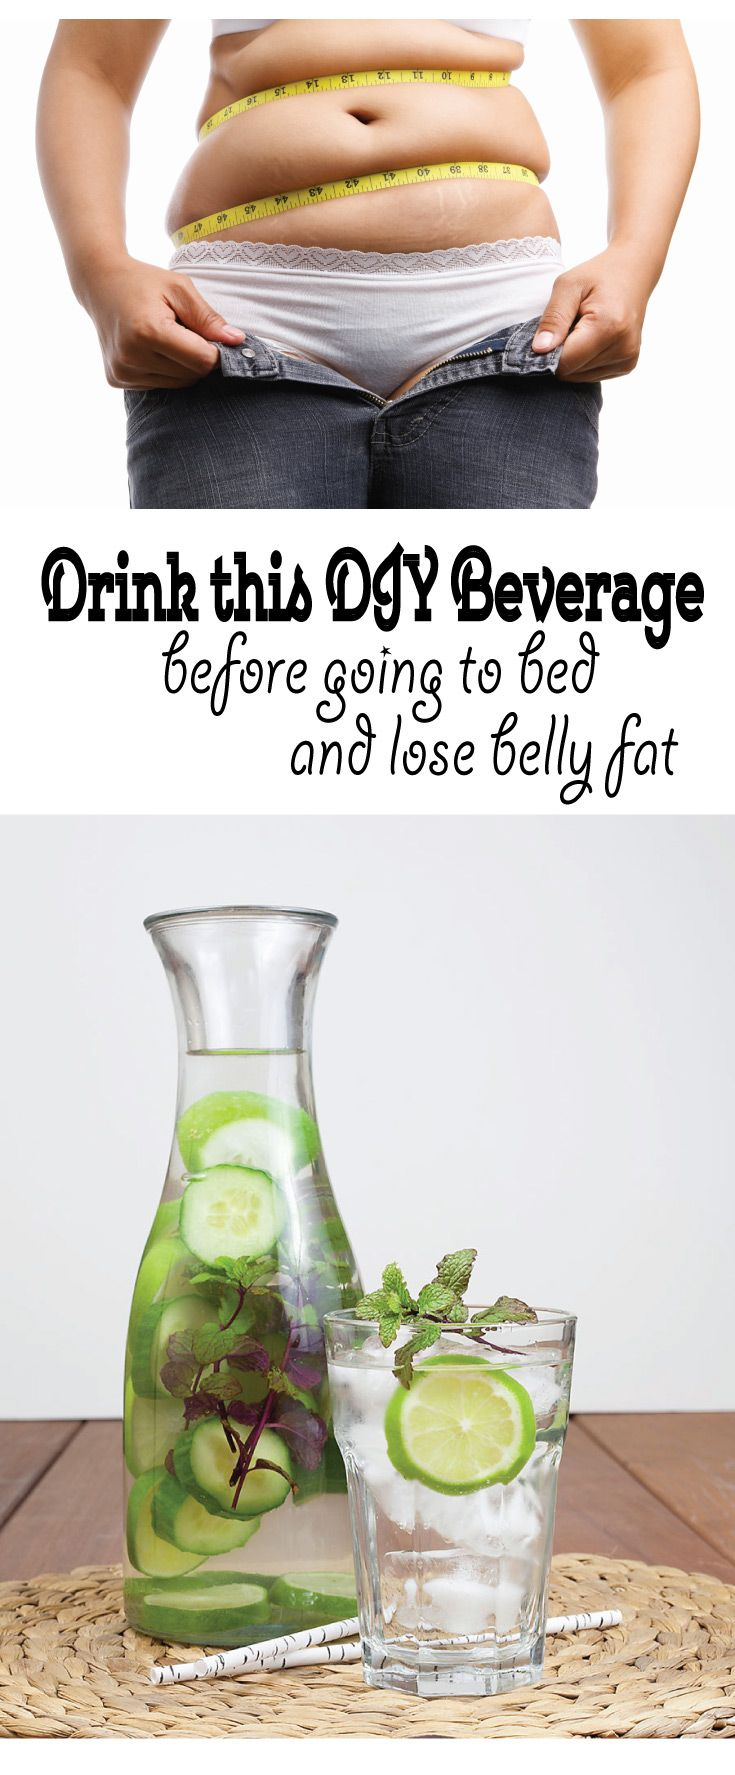 drink this DIY Beverage before going to bed and lose belly fat